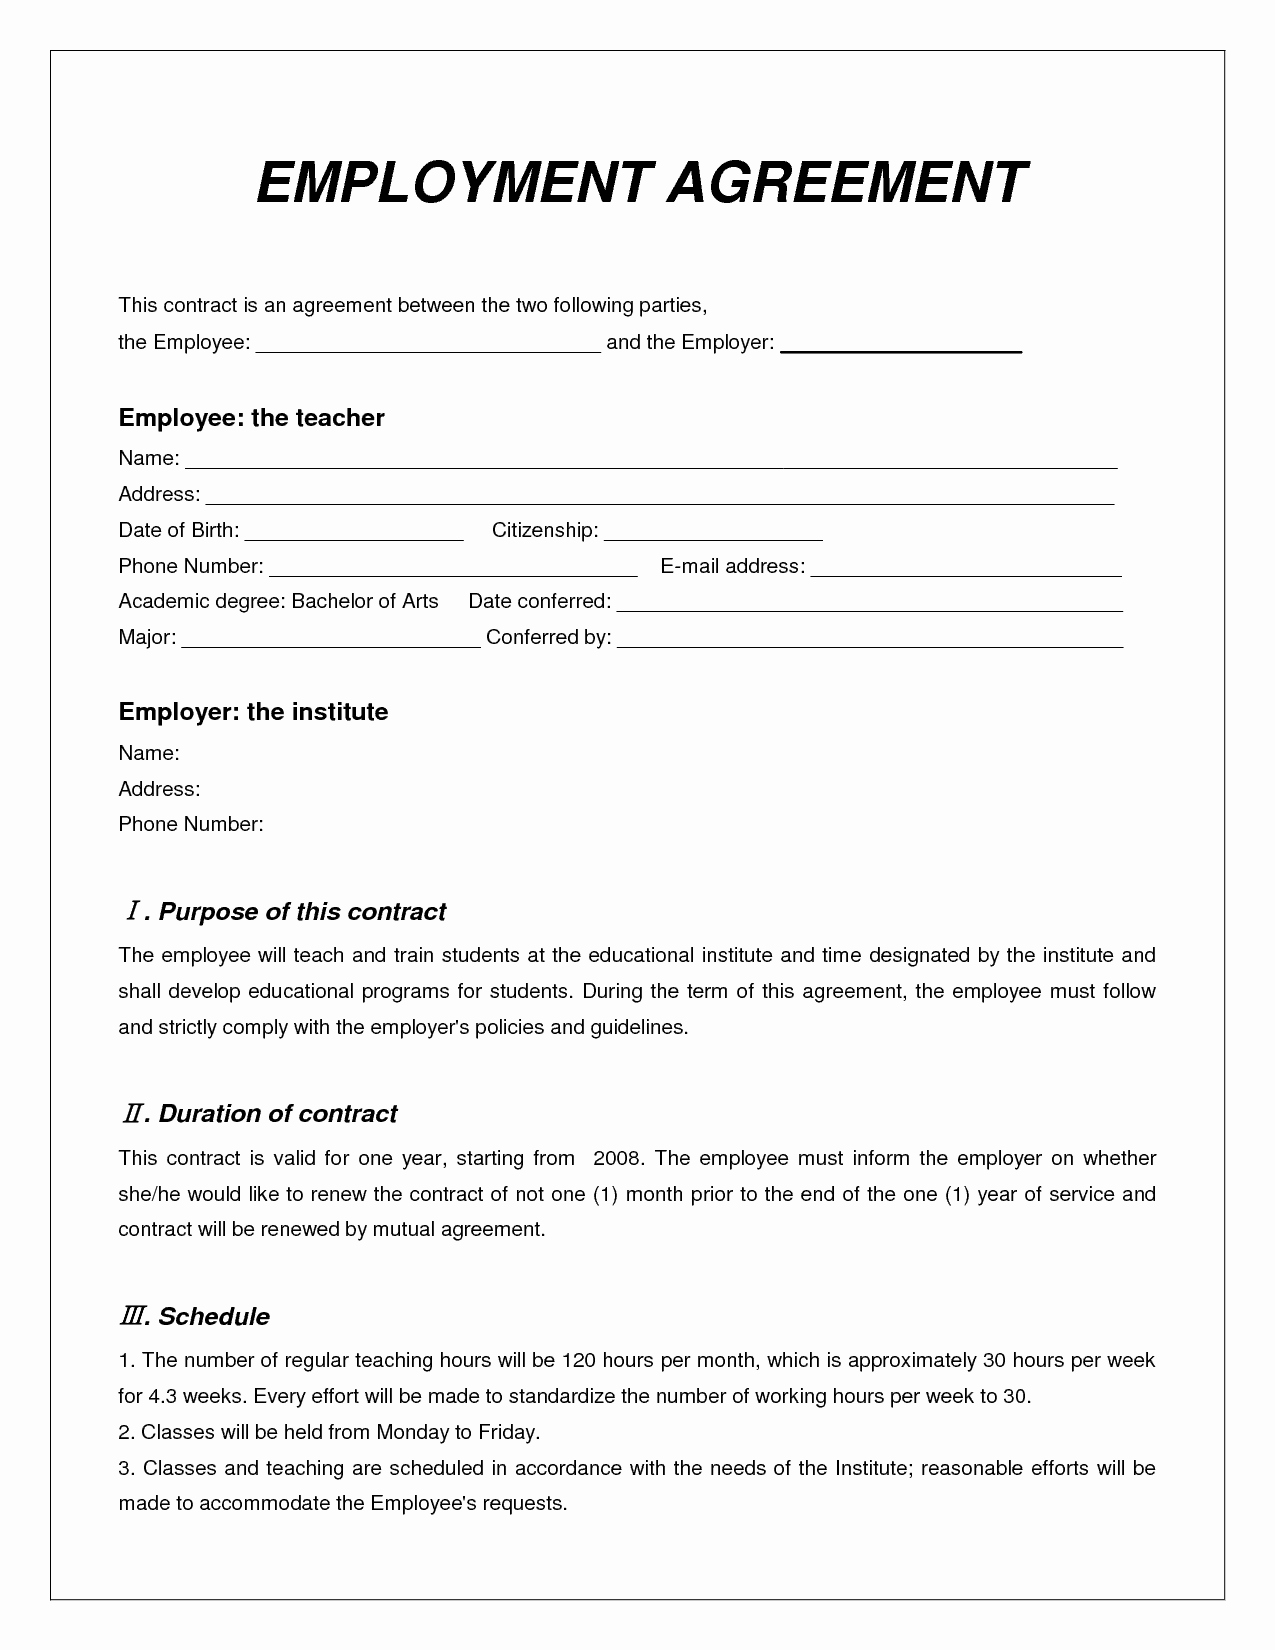 Employment Contract Template Word Elegant top 5 Free Employment Agreement Templates Word Templates